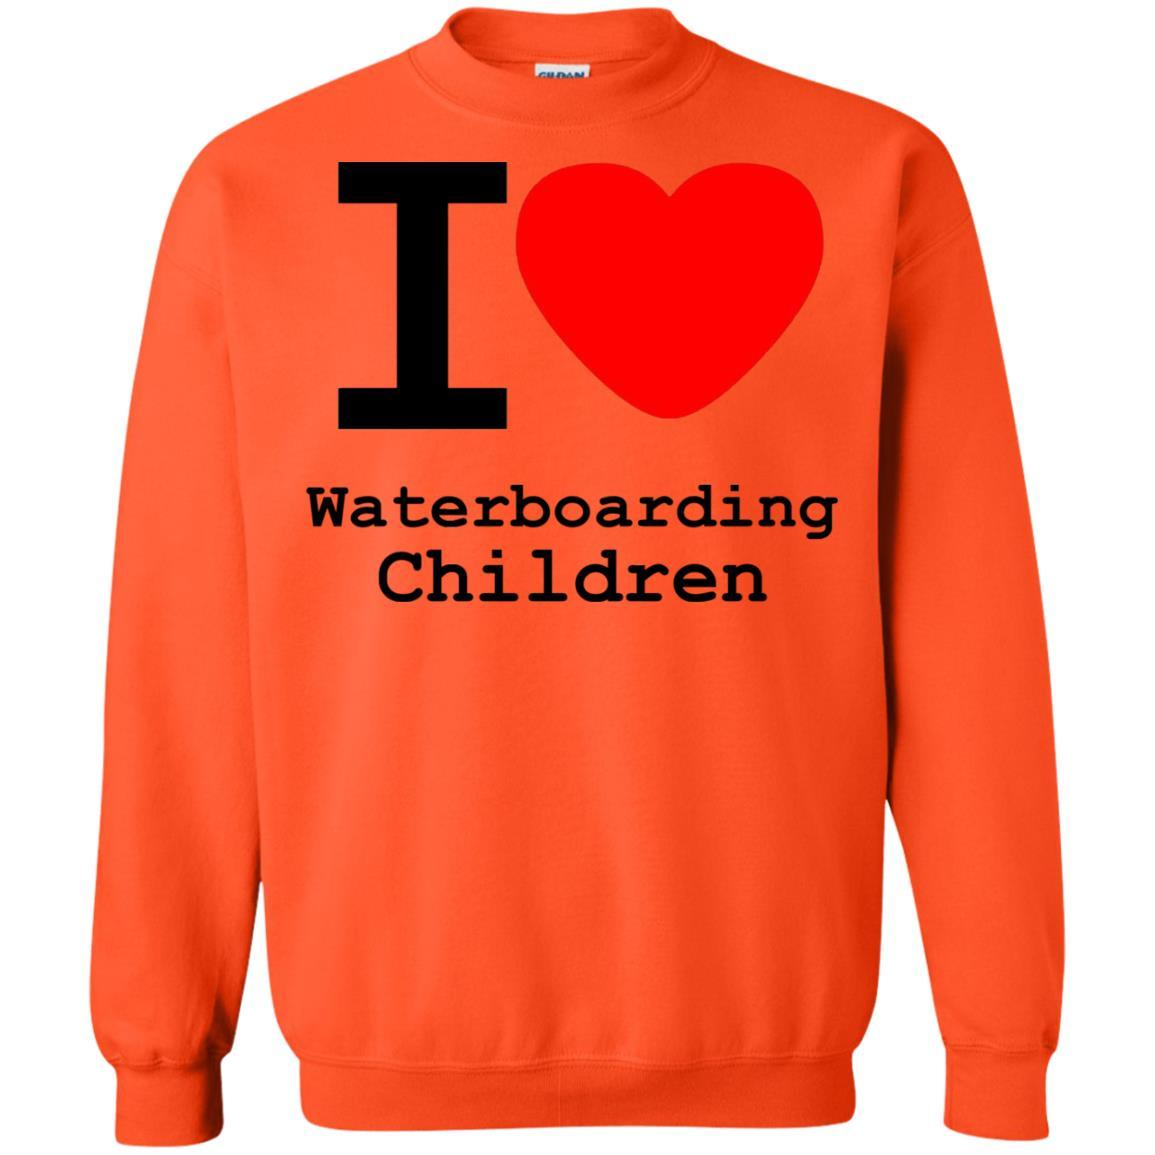 I love Waterboarding Children - Crewneck Pullover Sweatshirt Orange / 5XL